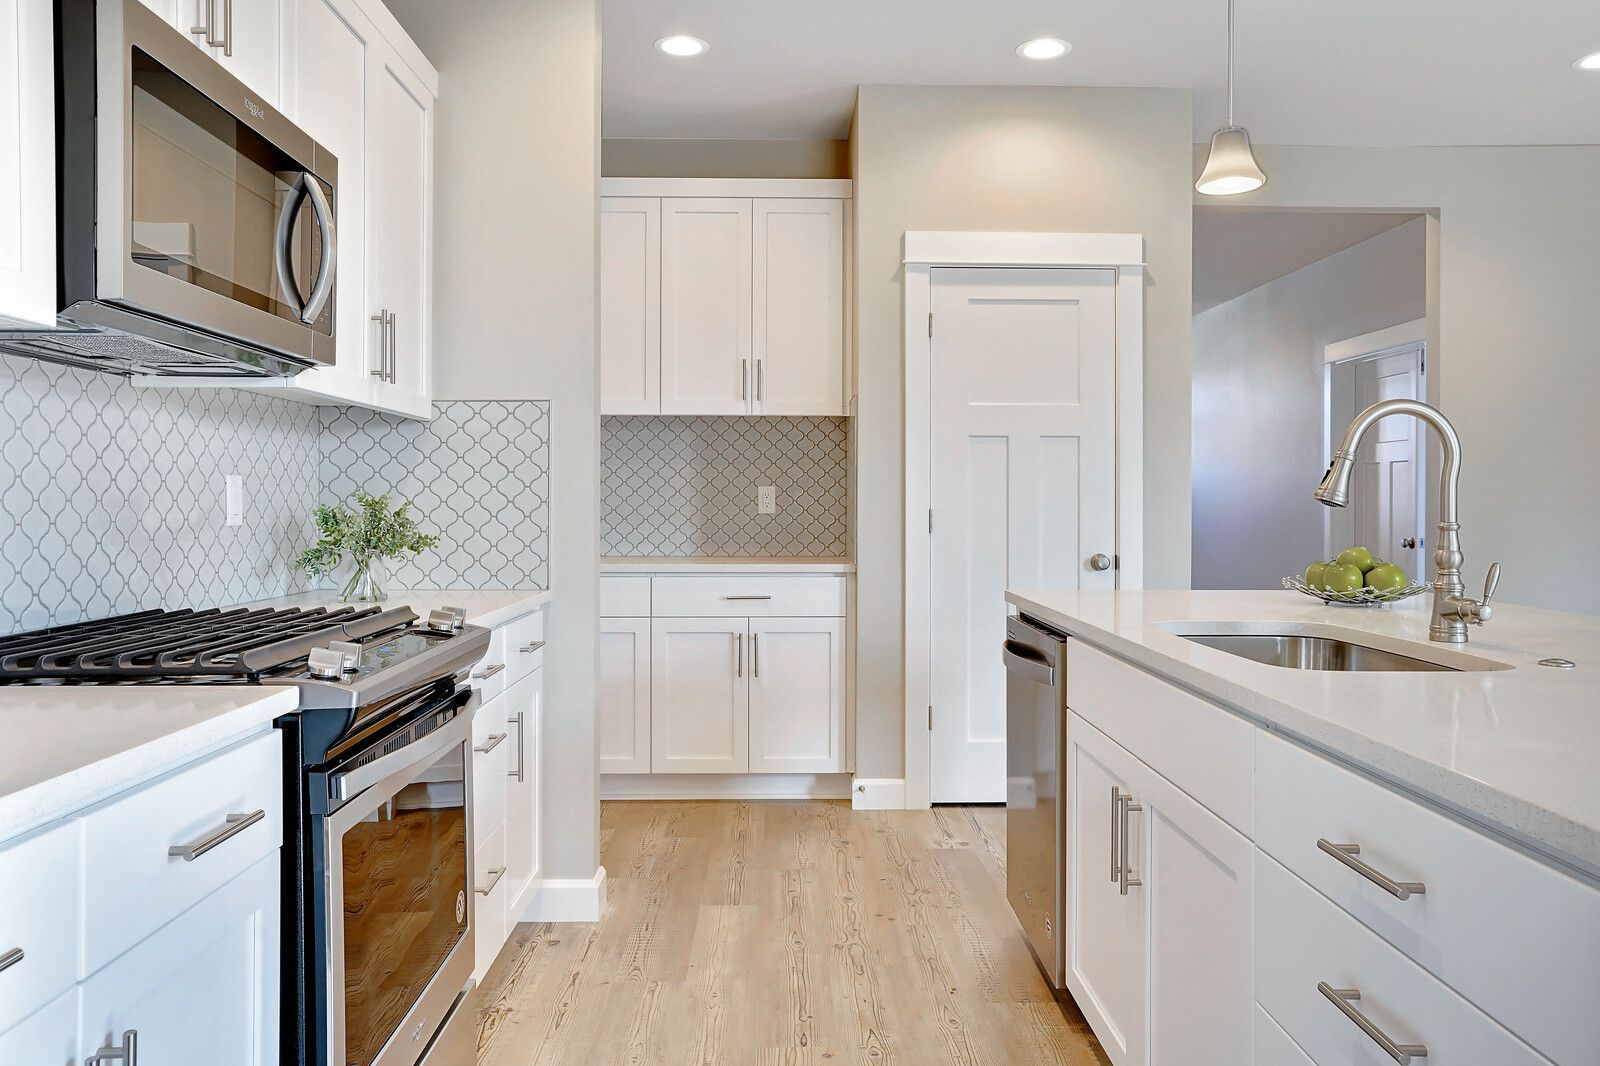 Kitchen featured in the Weatherford By Tailored by Woodhill Homes in Central Oregon, OR